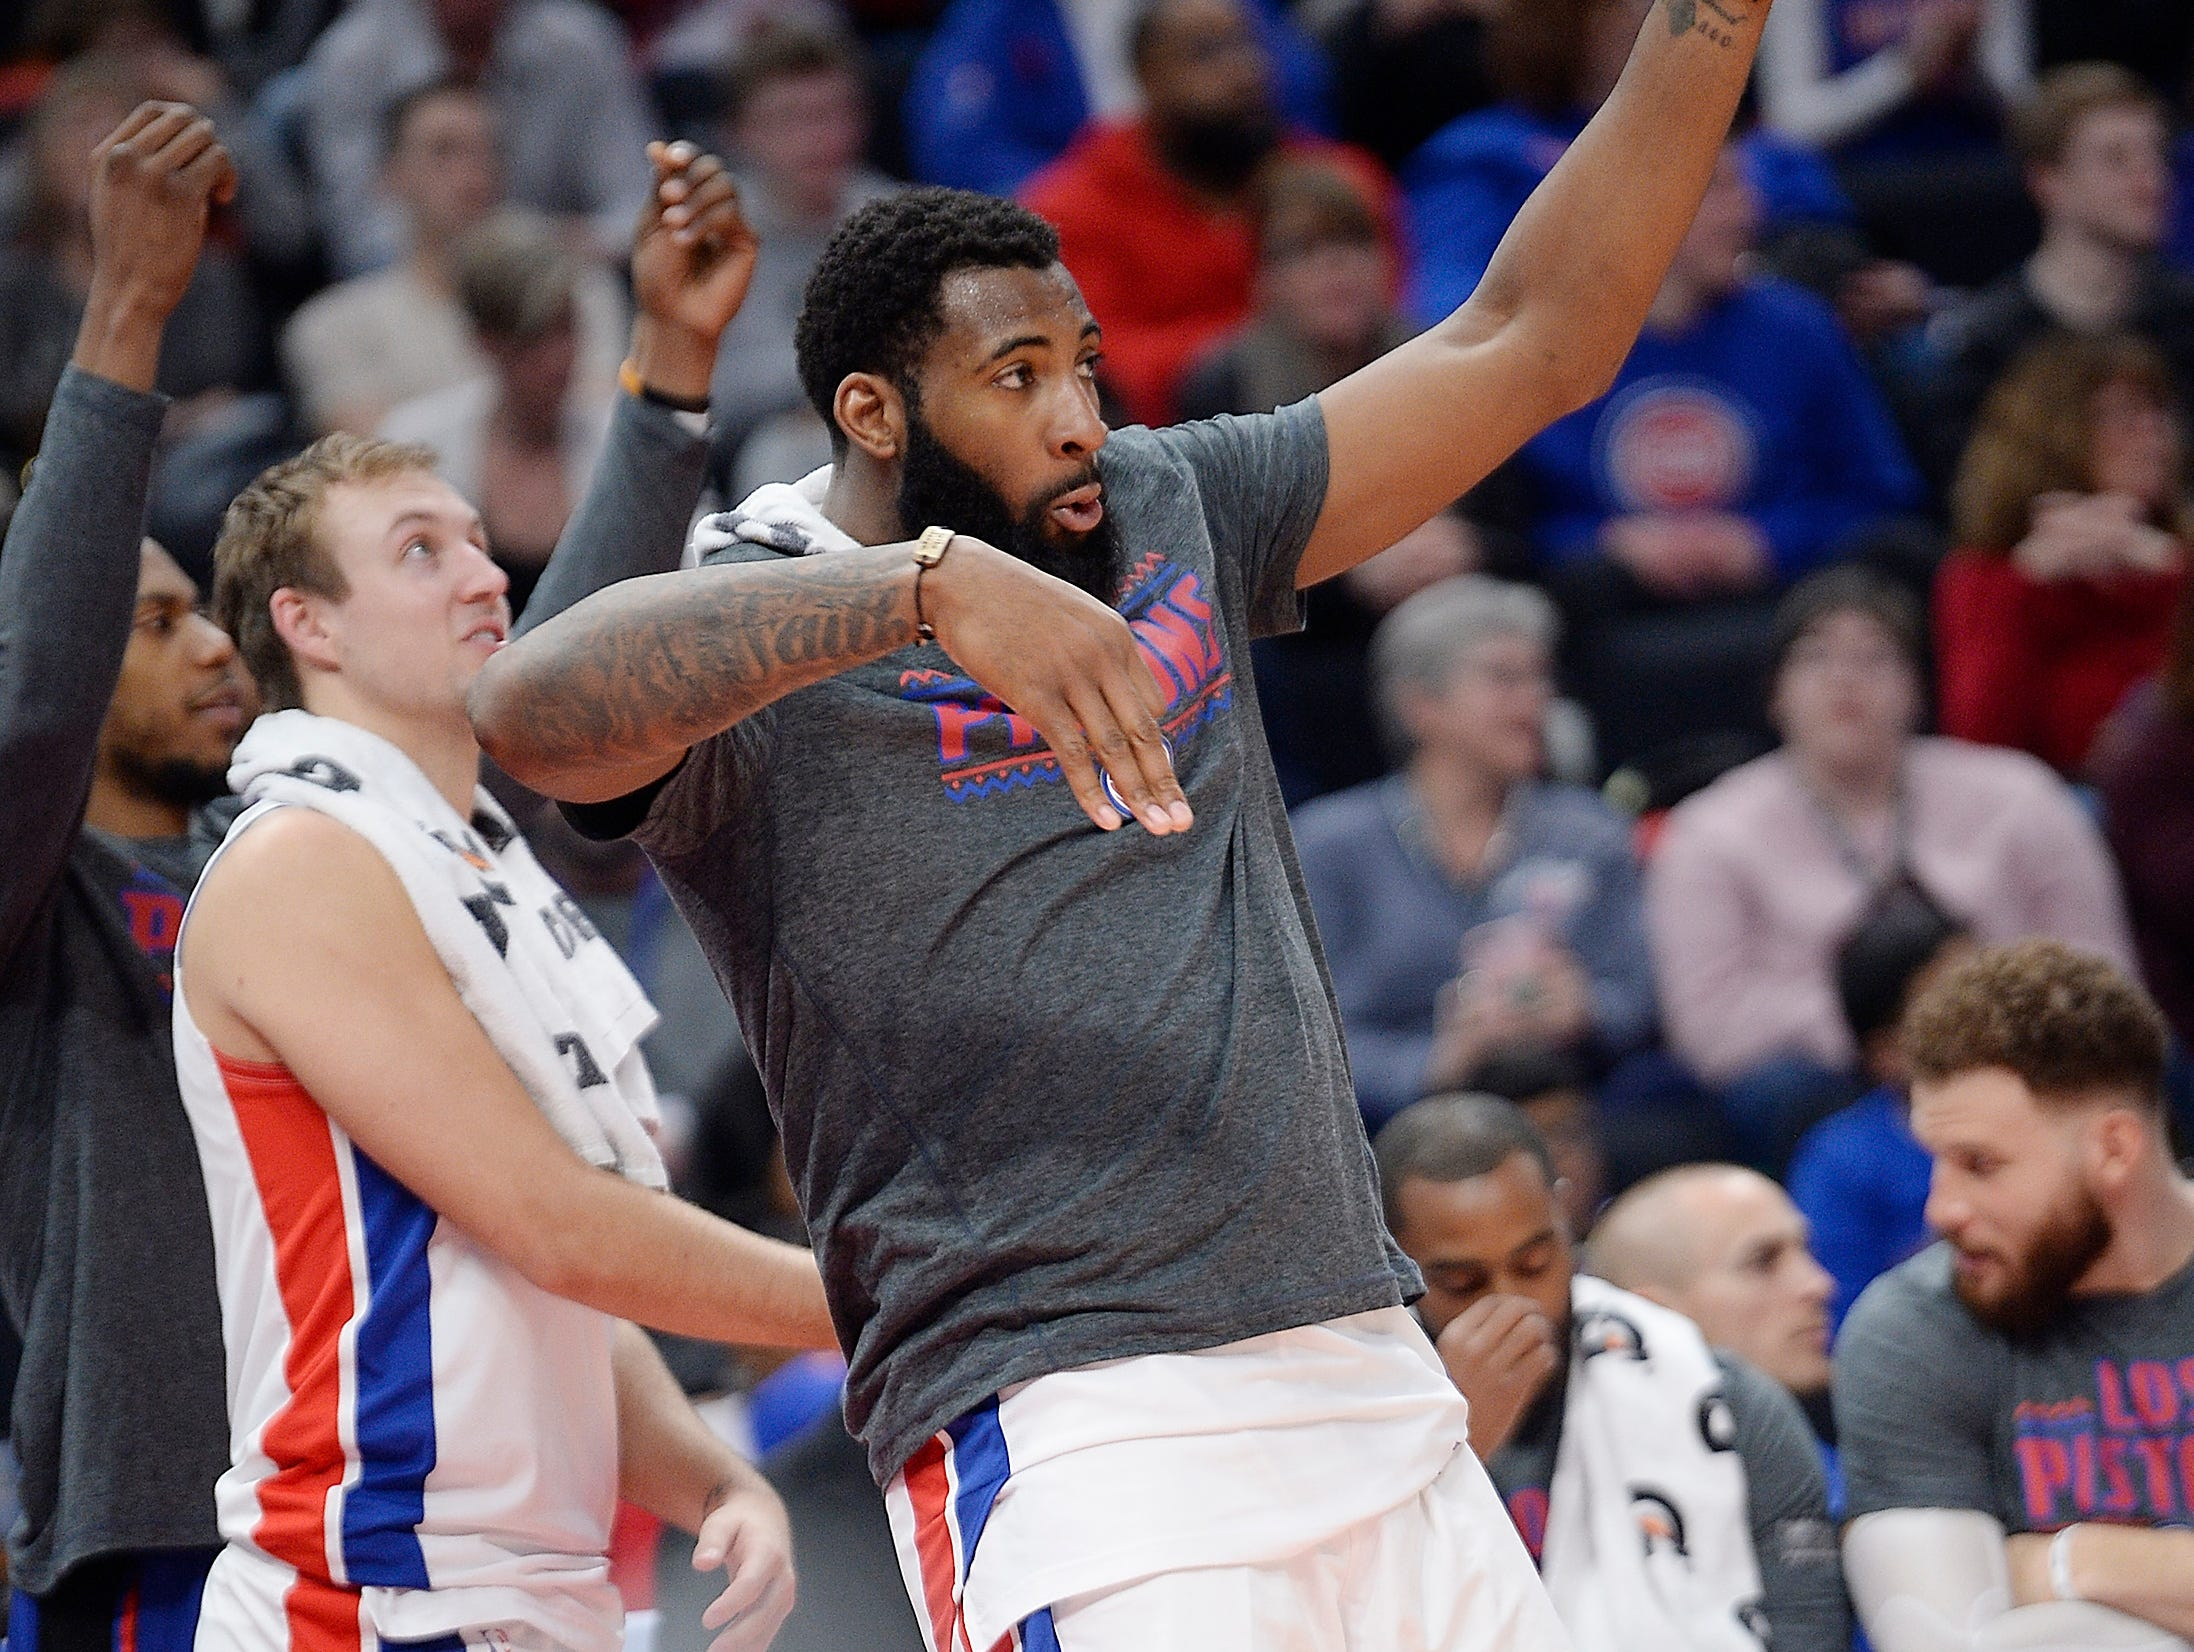 Pistons' Andre Drummond celebrates in the fourth quarter after a Langston Galloway 3-point basket.